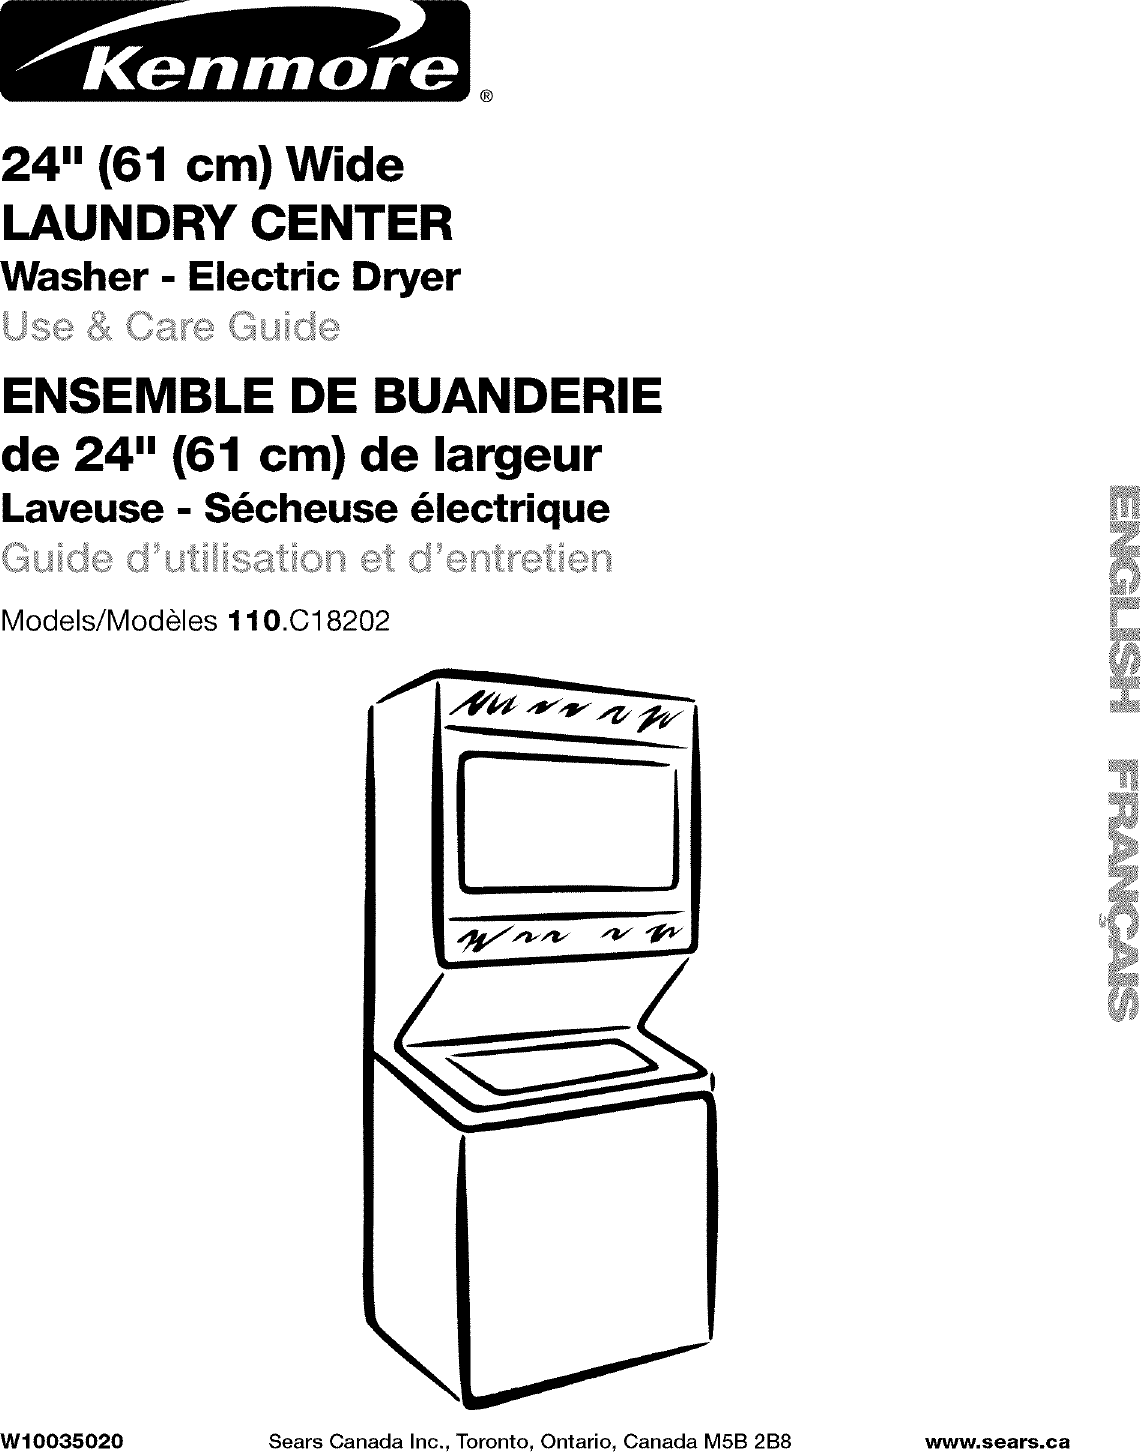 Kenmore 1101820296 User Manual LAUNDRY CENTER Manuals And